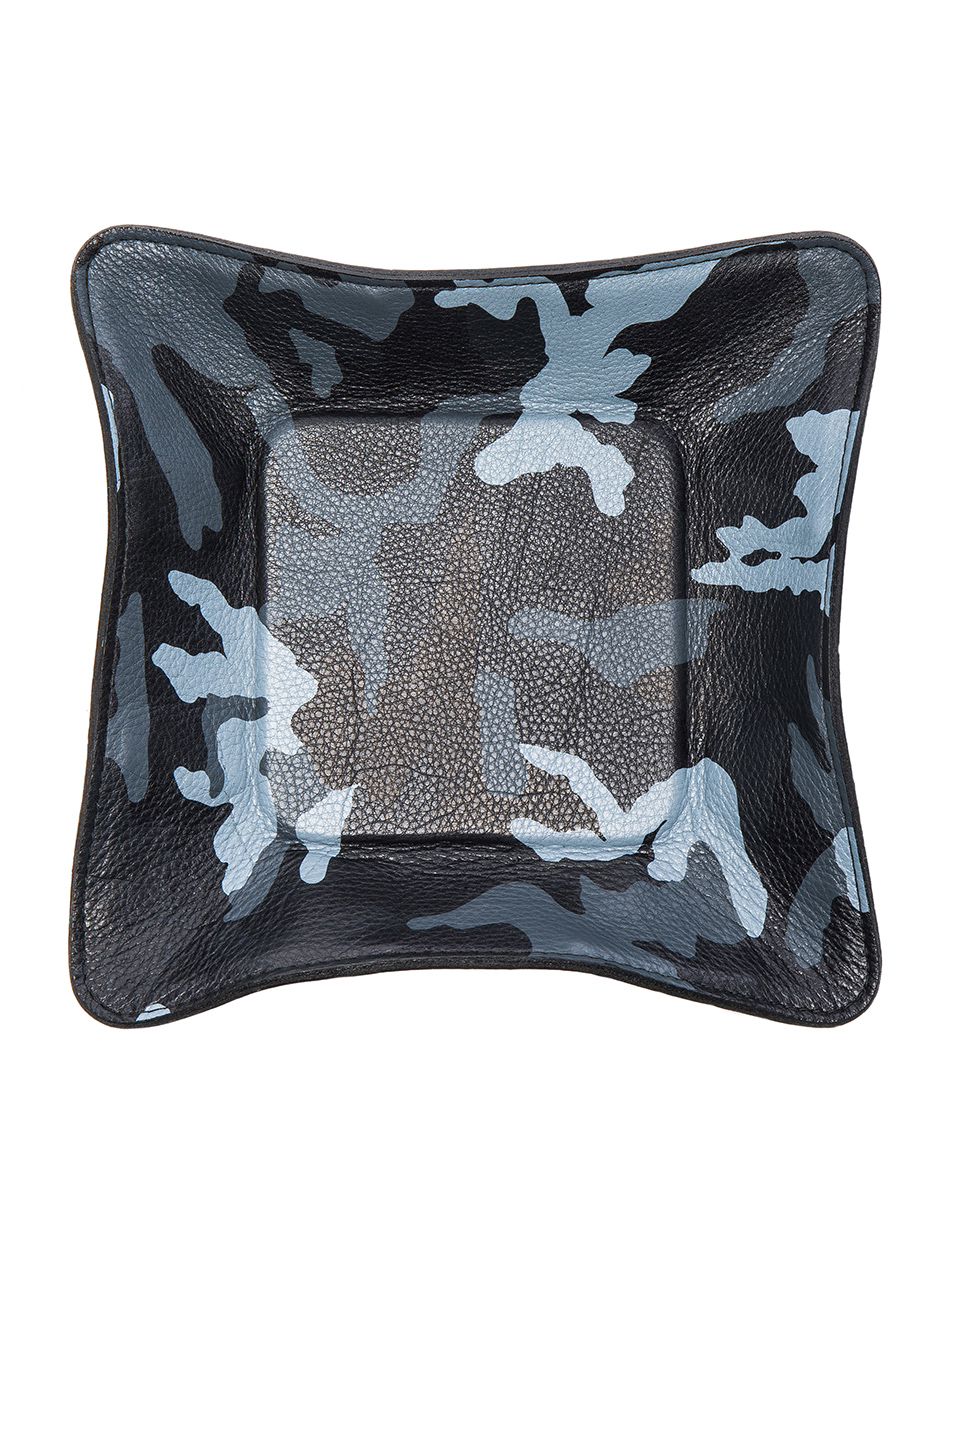 Elisabeth Weinstock Quebec Leather Camo Tray in Abstract,Blue